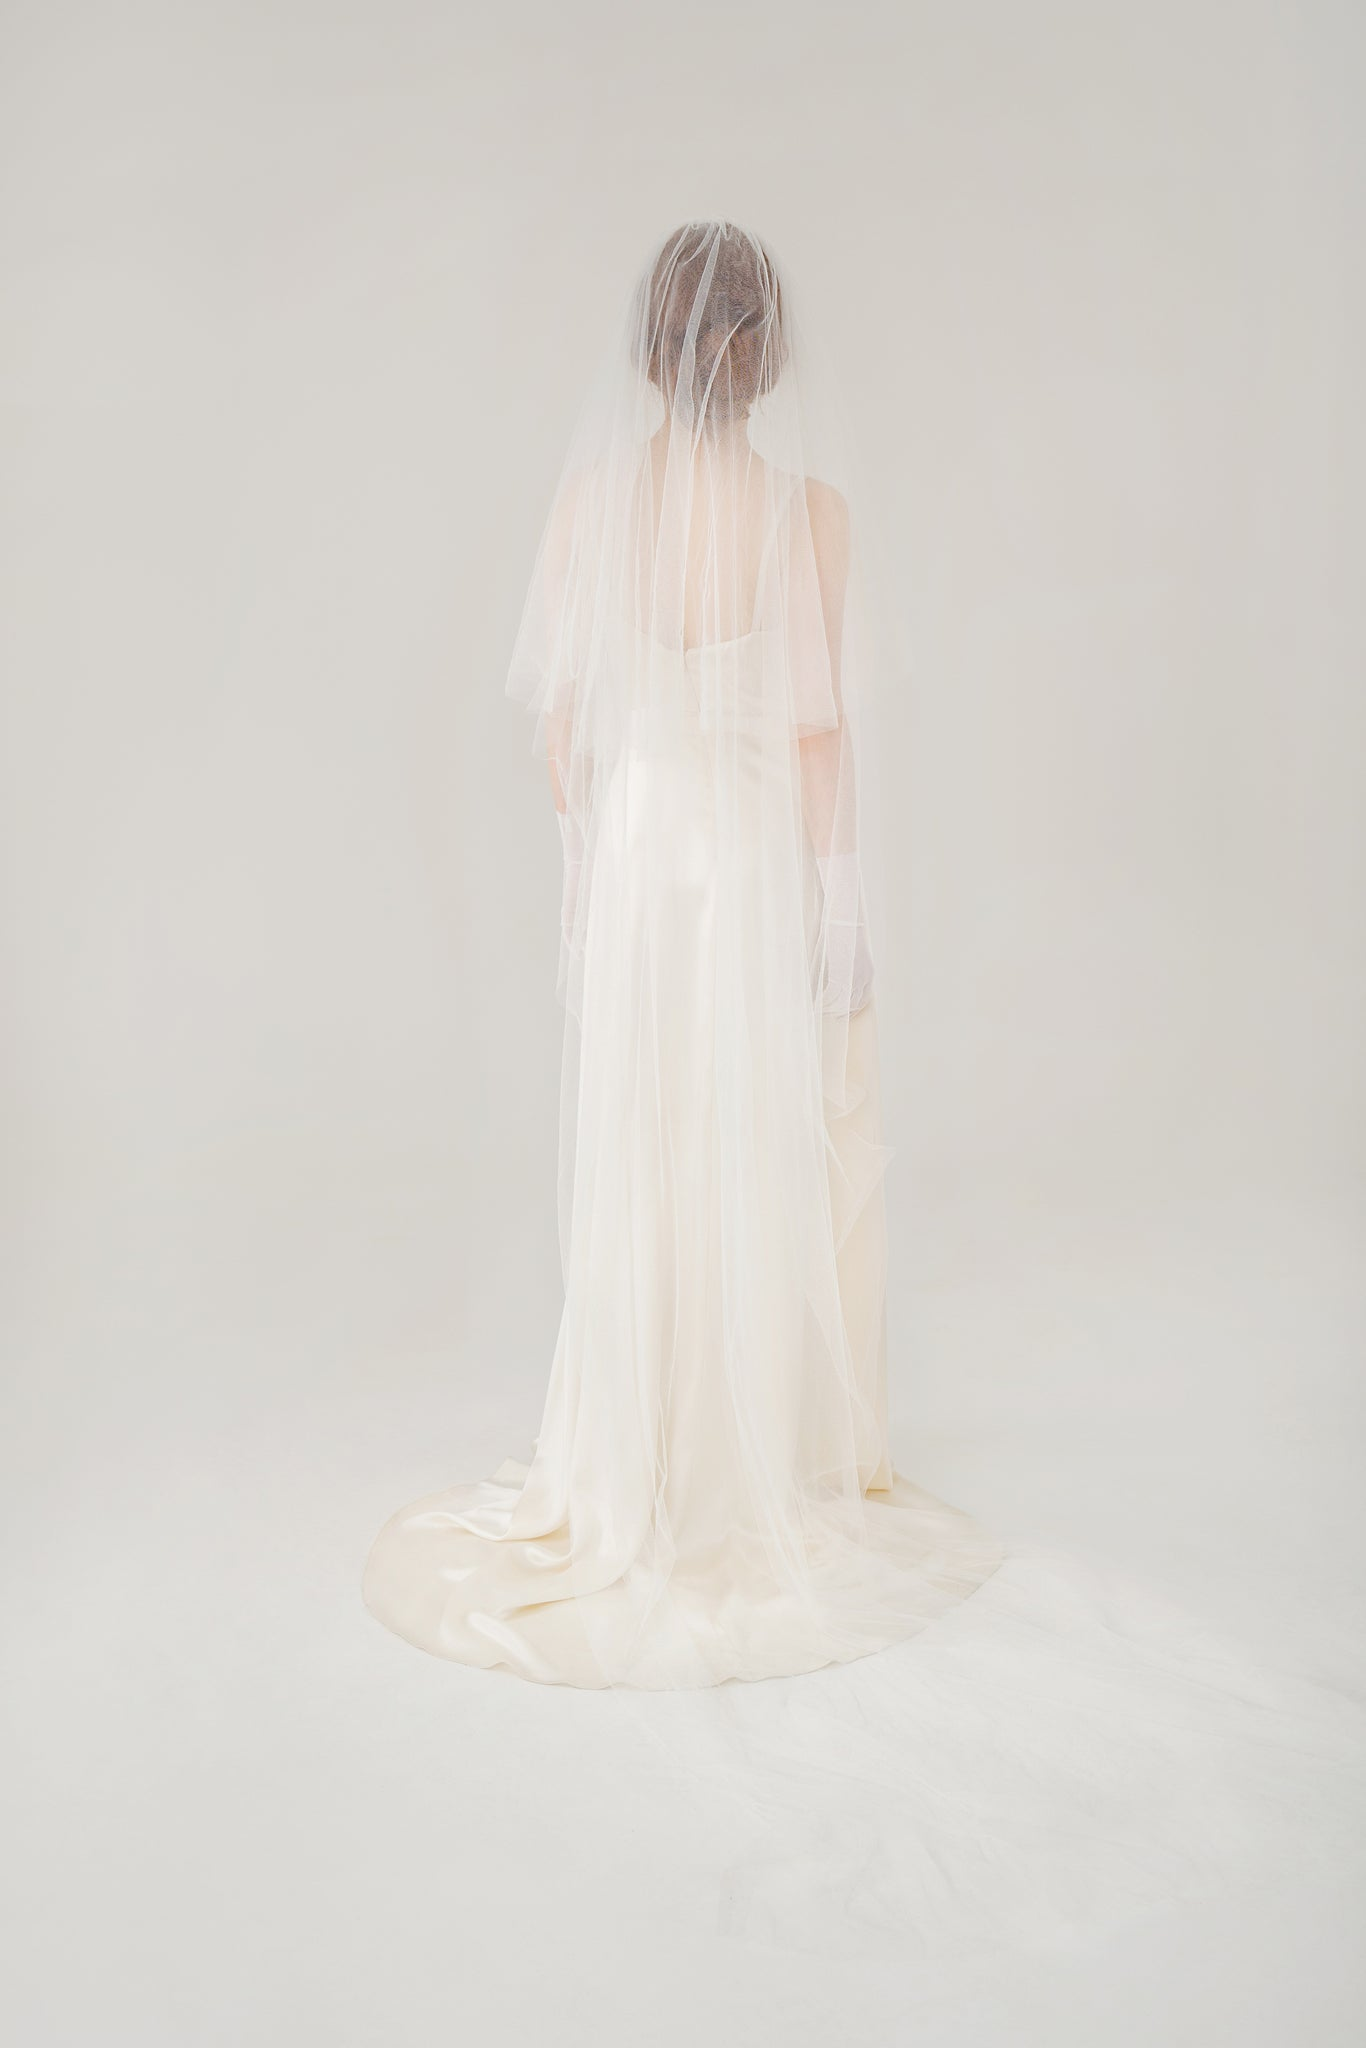 Elizabeth Two-Tier Cascade Veil